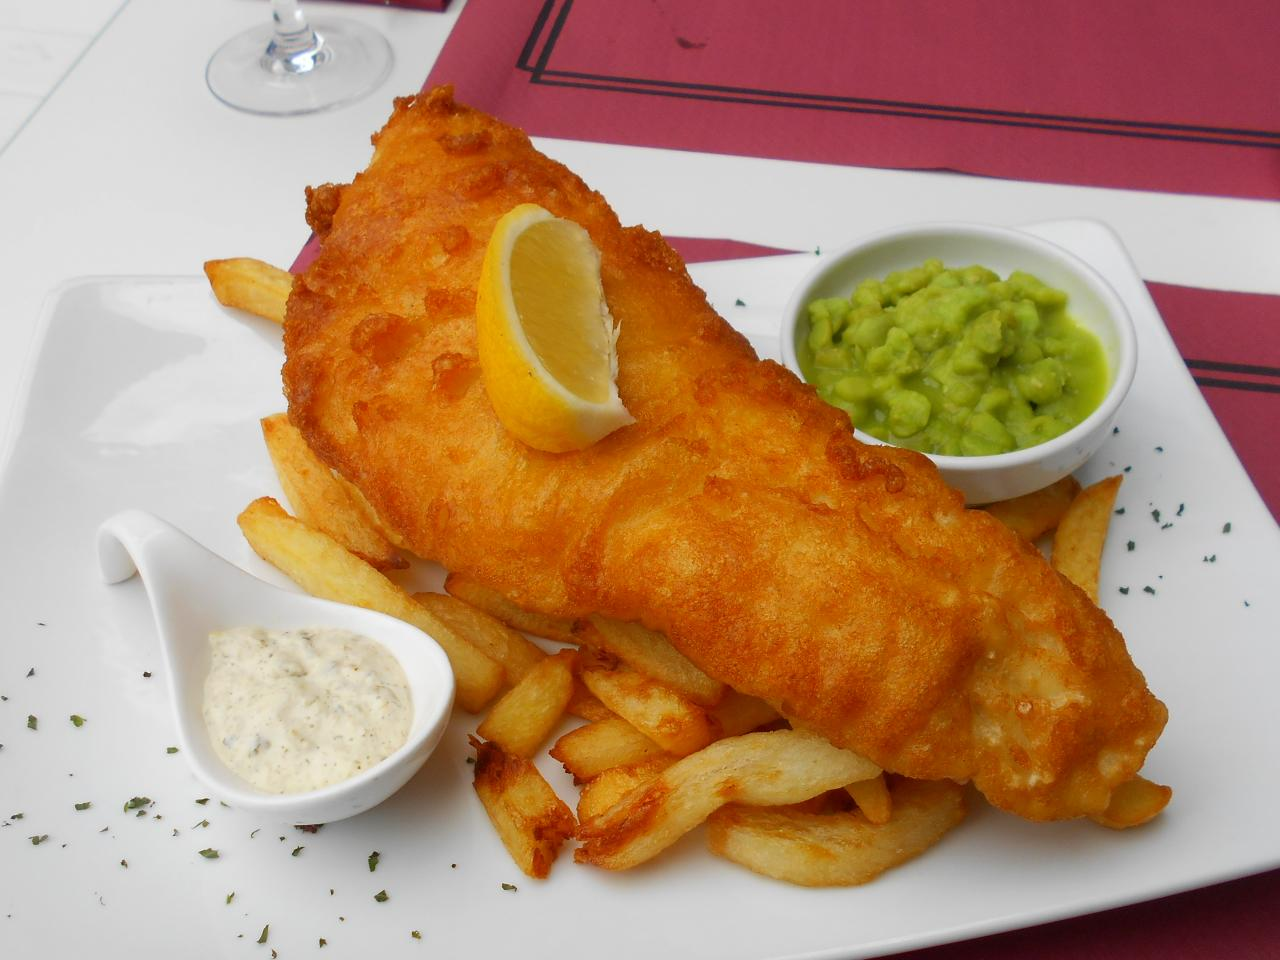 The jumbo version of fish and chips